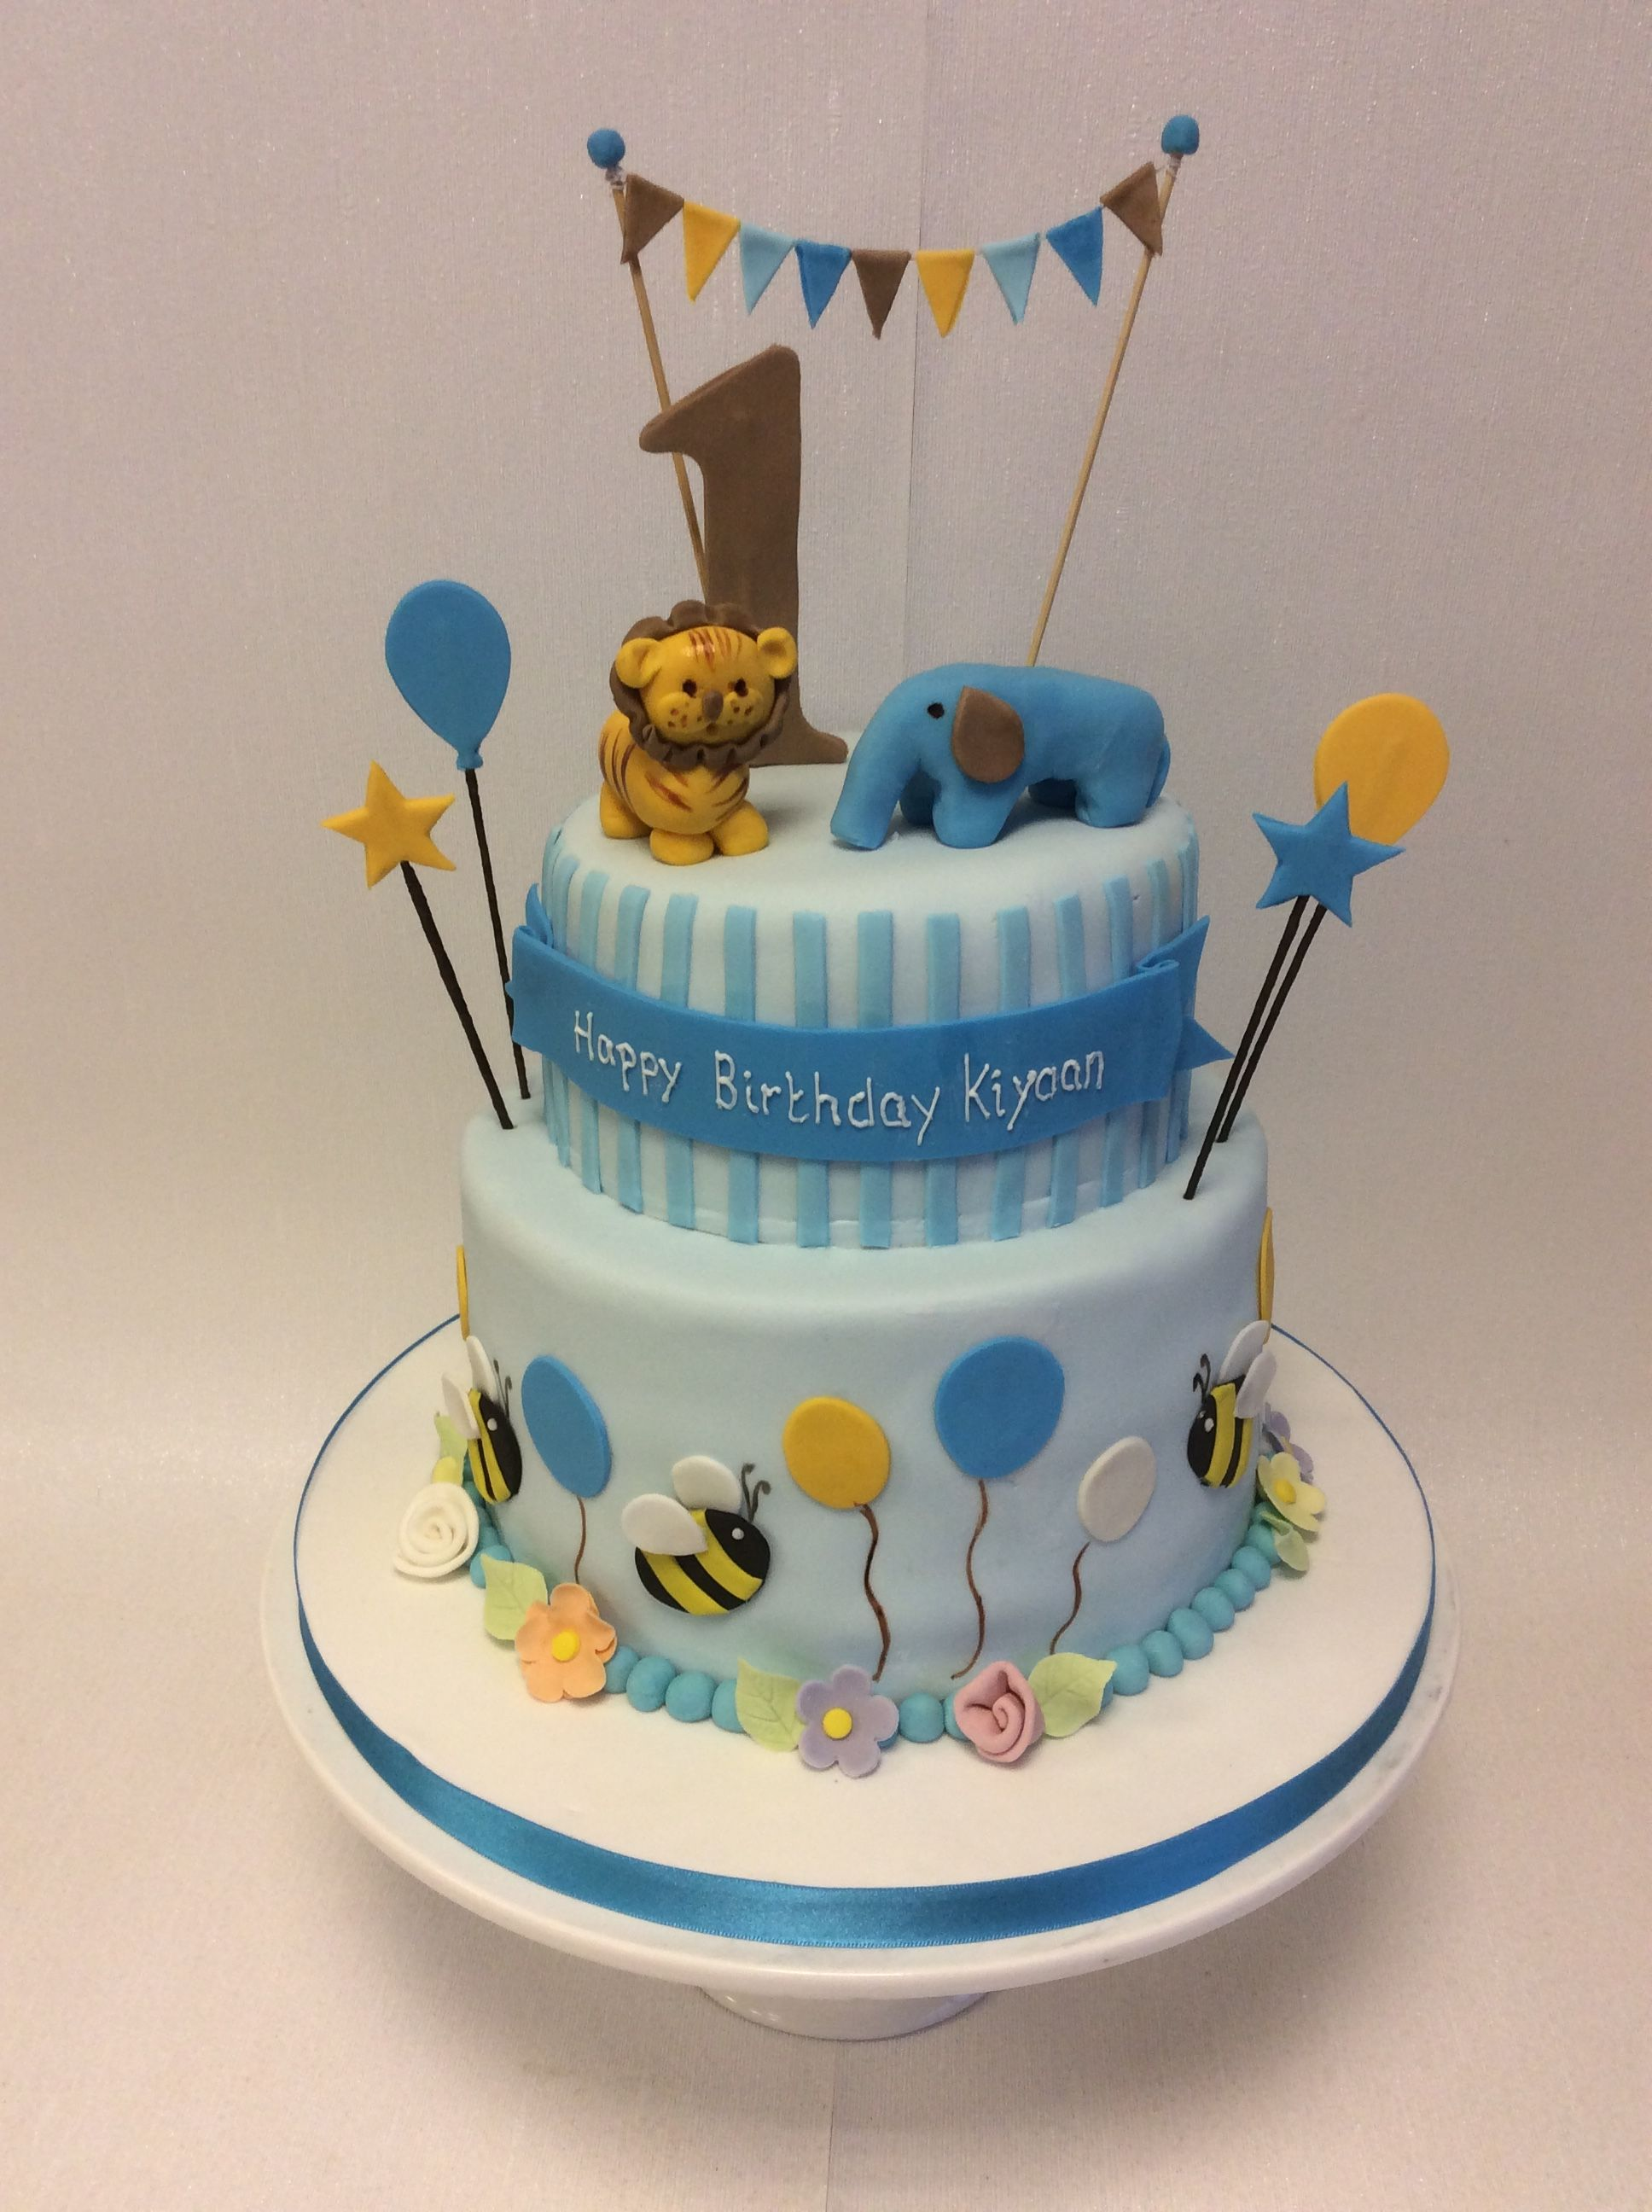 2 Tier 1st Birthday Cake With Animals And Bumble Bees 1st Birthday Cakes Birthday Cake With Candles Boy Birthday Cake Cake designs for boys 1st birthday